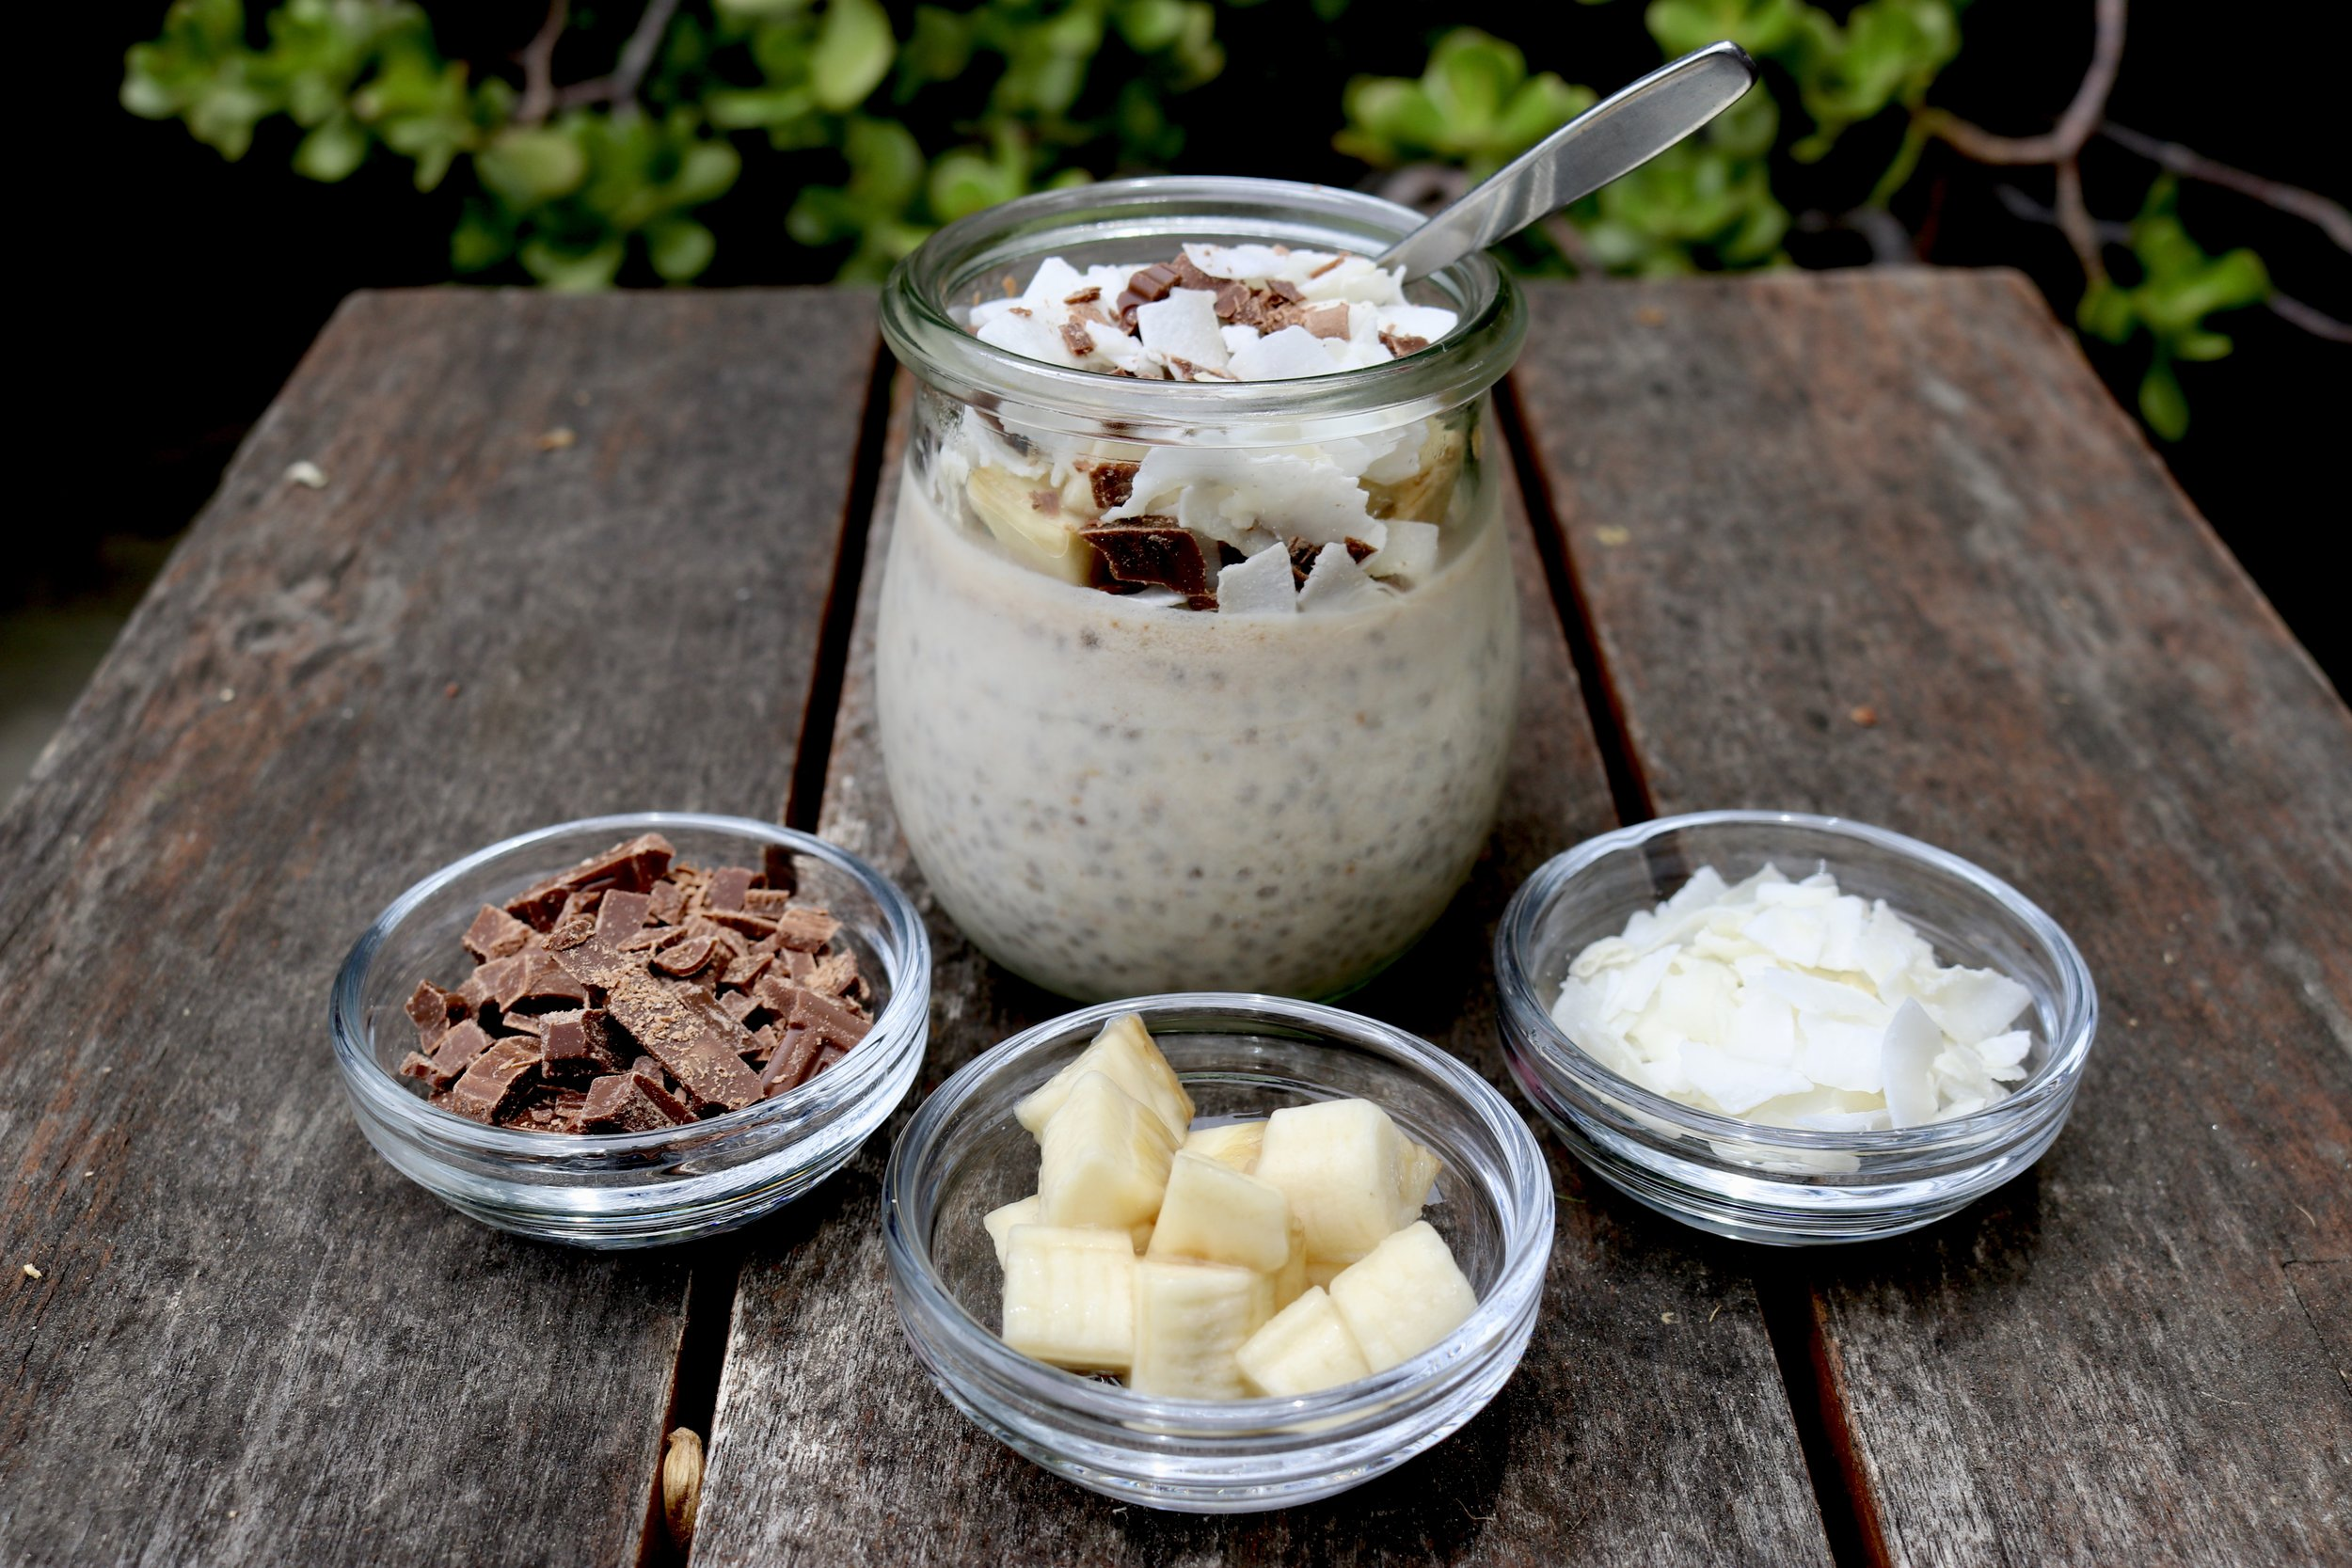 Coconut-Banana Chia Seed Pudding (with rum)